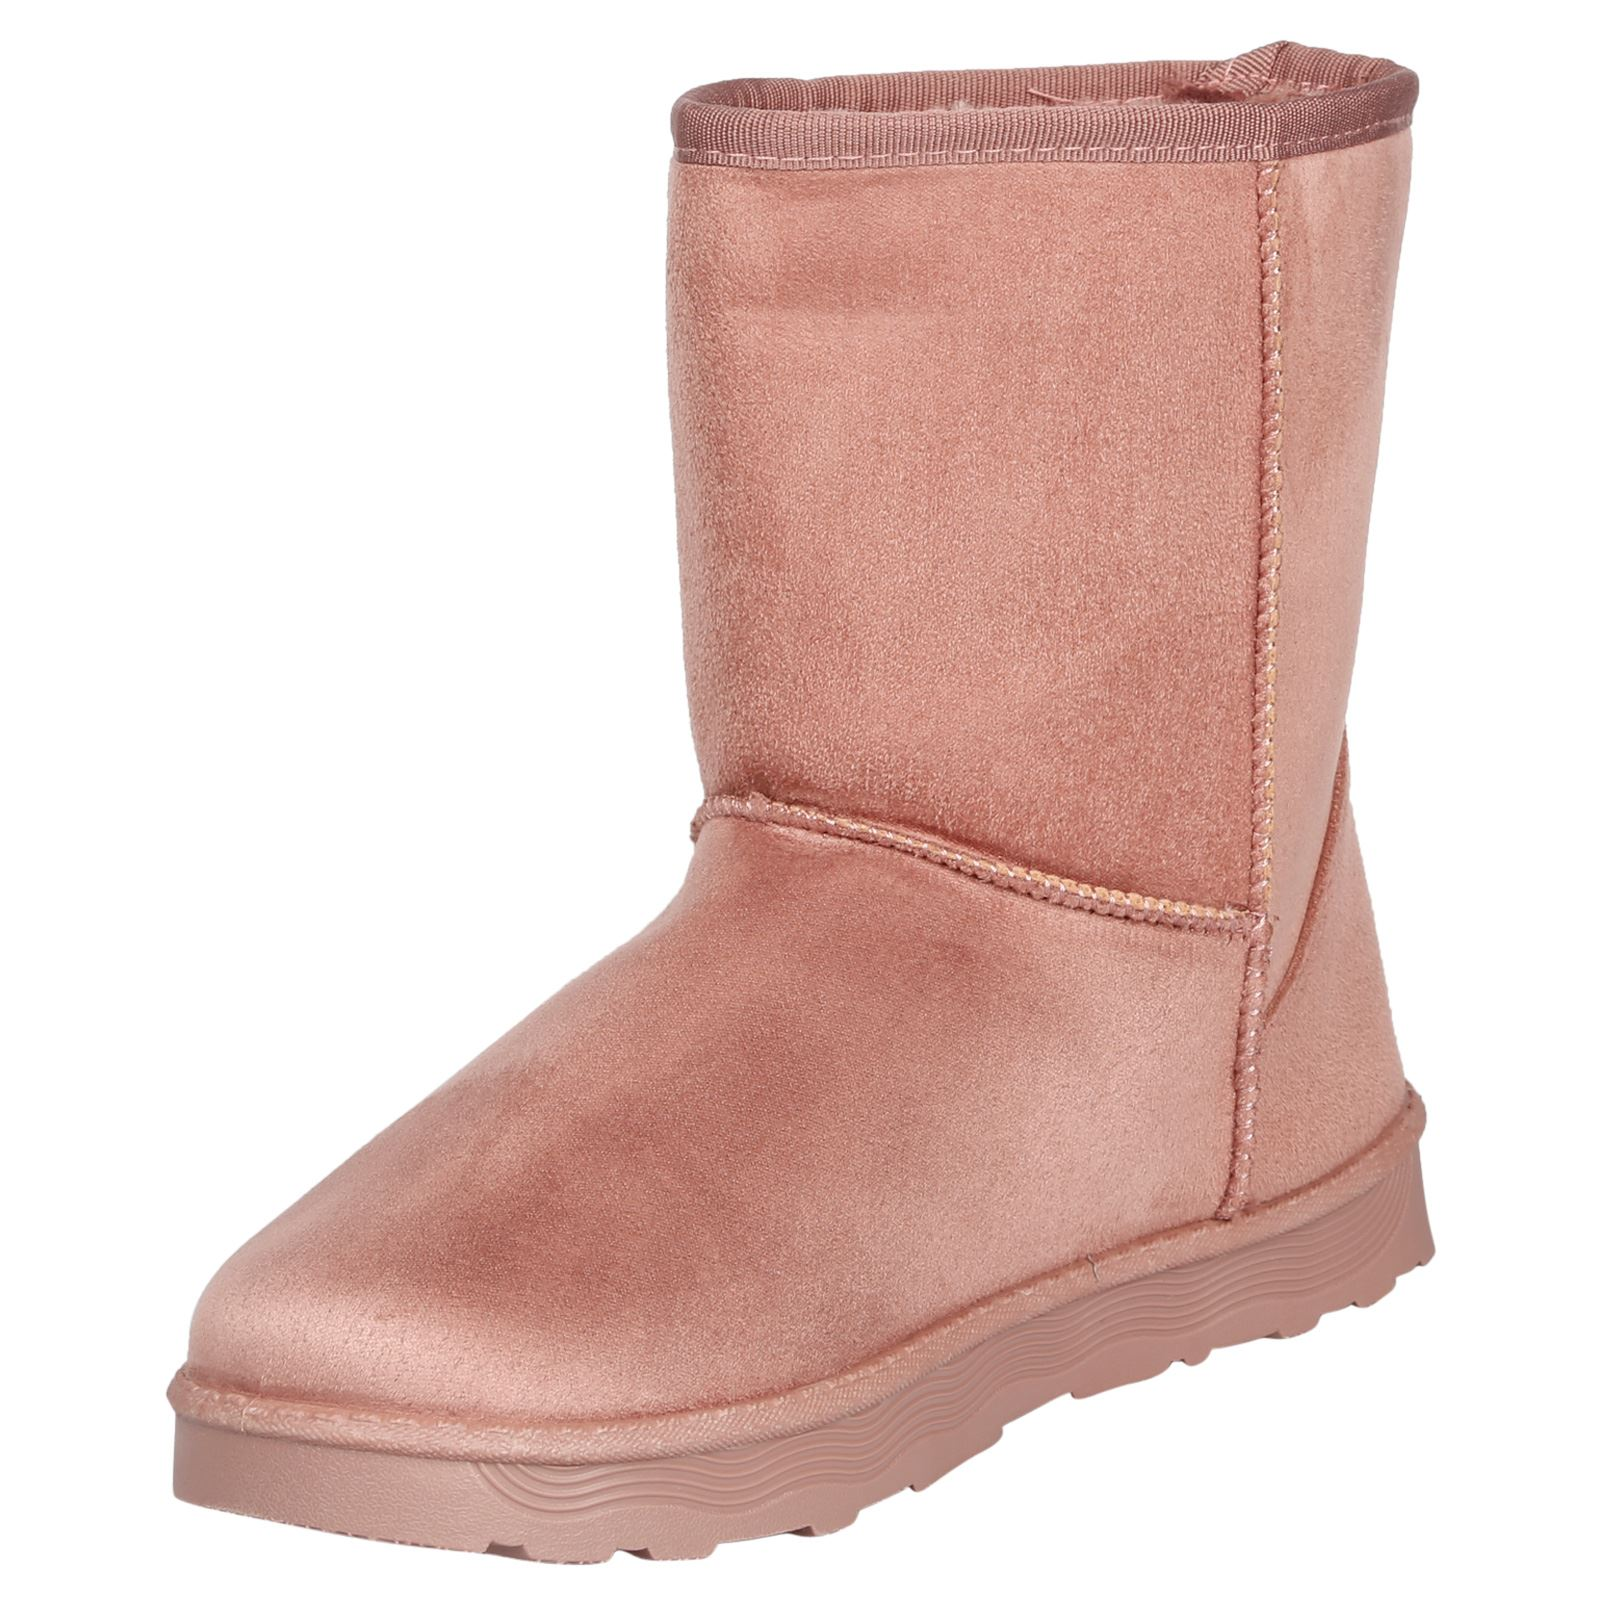 Paisleigh-Womens-Platfrom-Flat-Fur-Lined-Pull-On-Snug-Snow-Boots-Casual-Ladies thumbnail 19